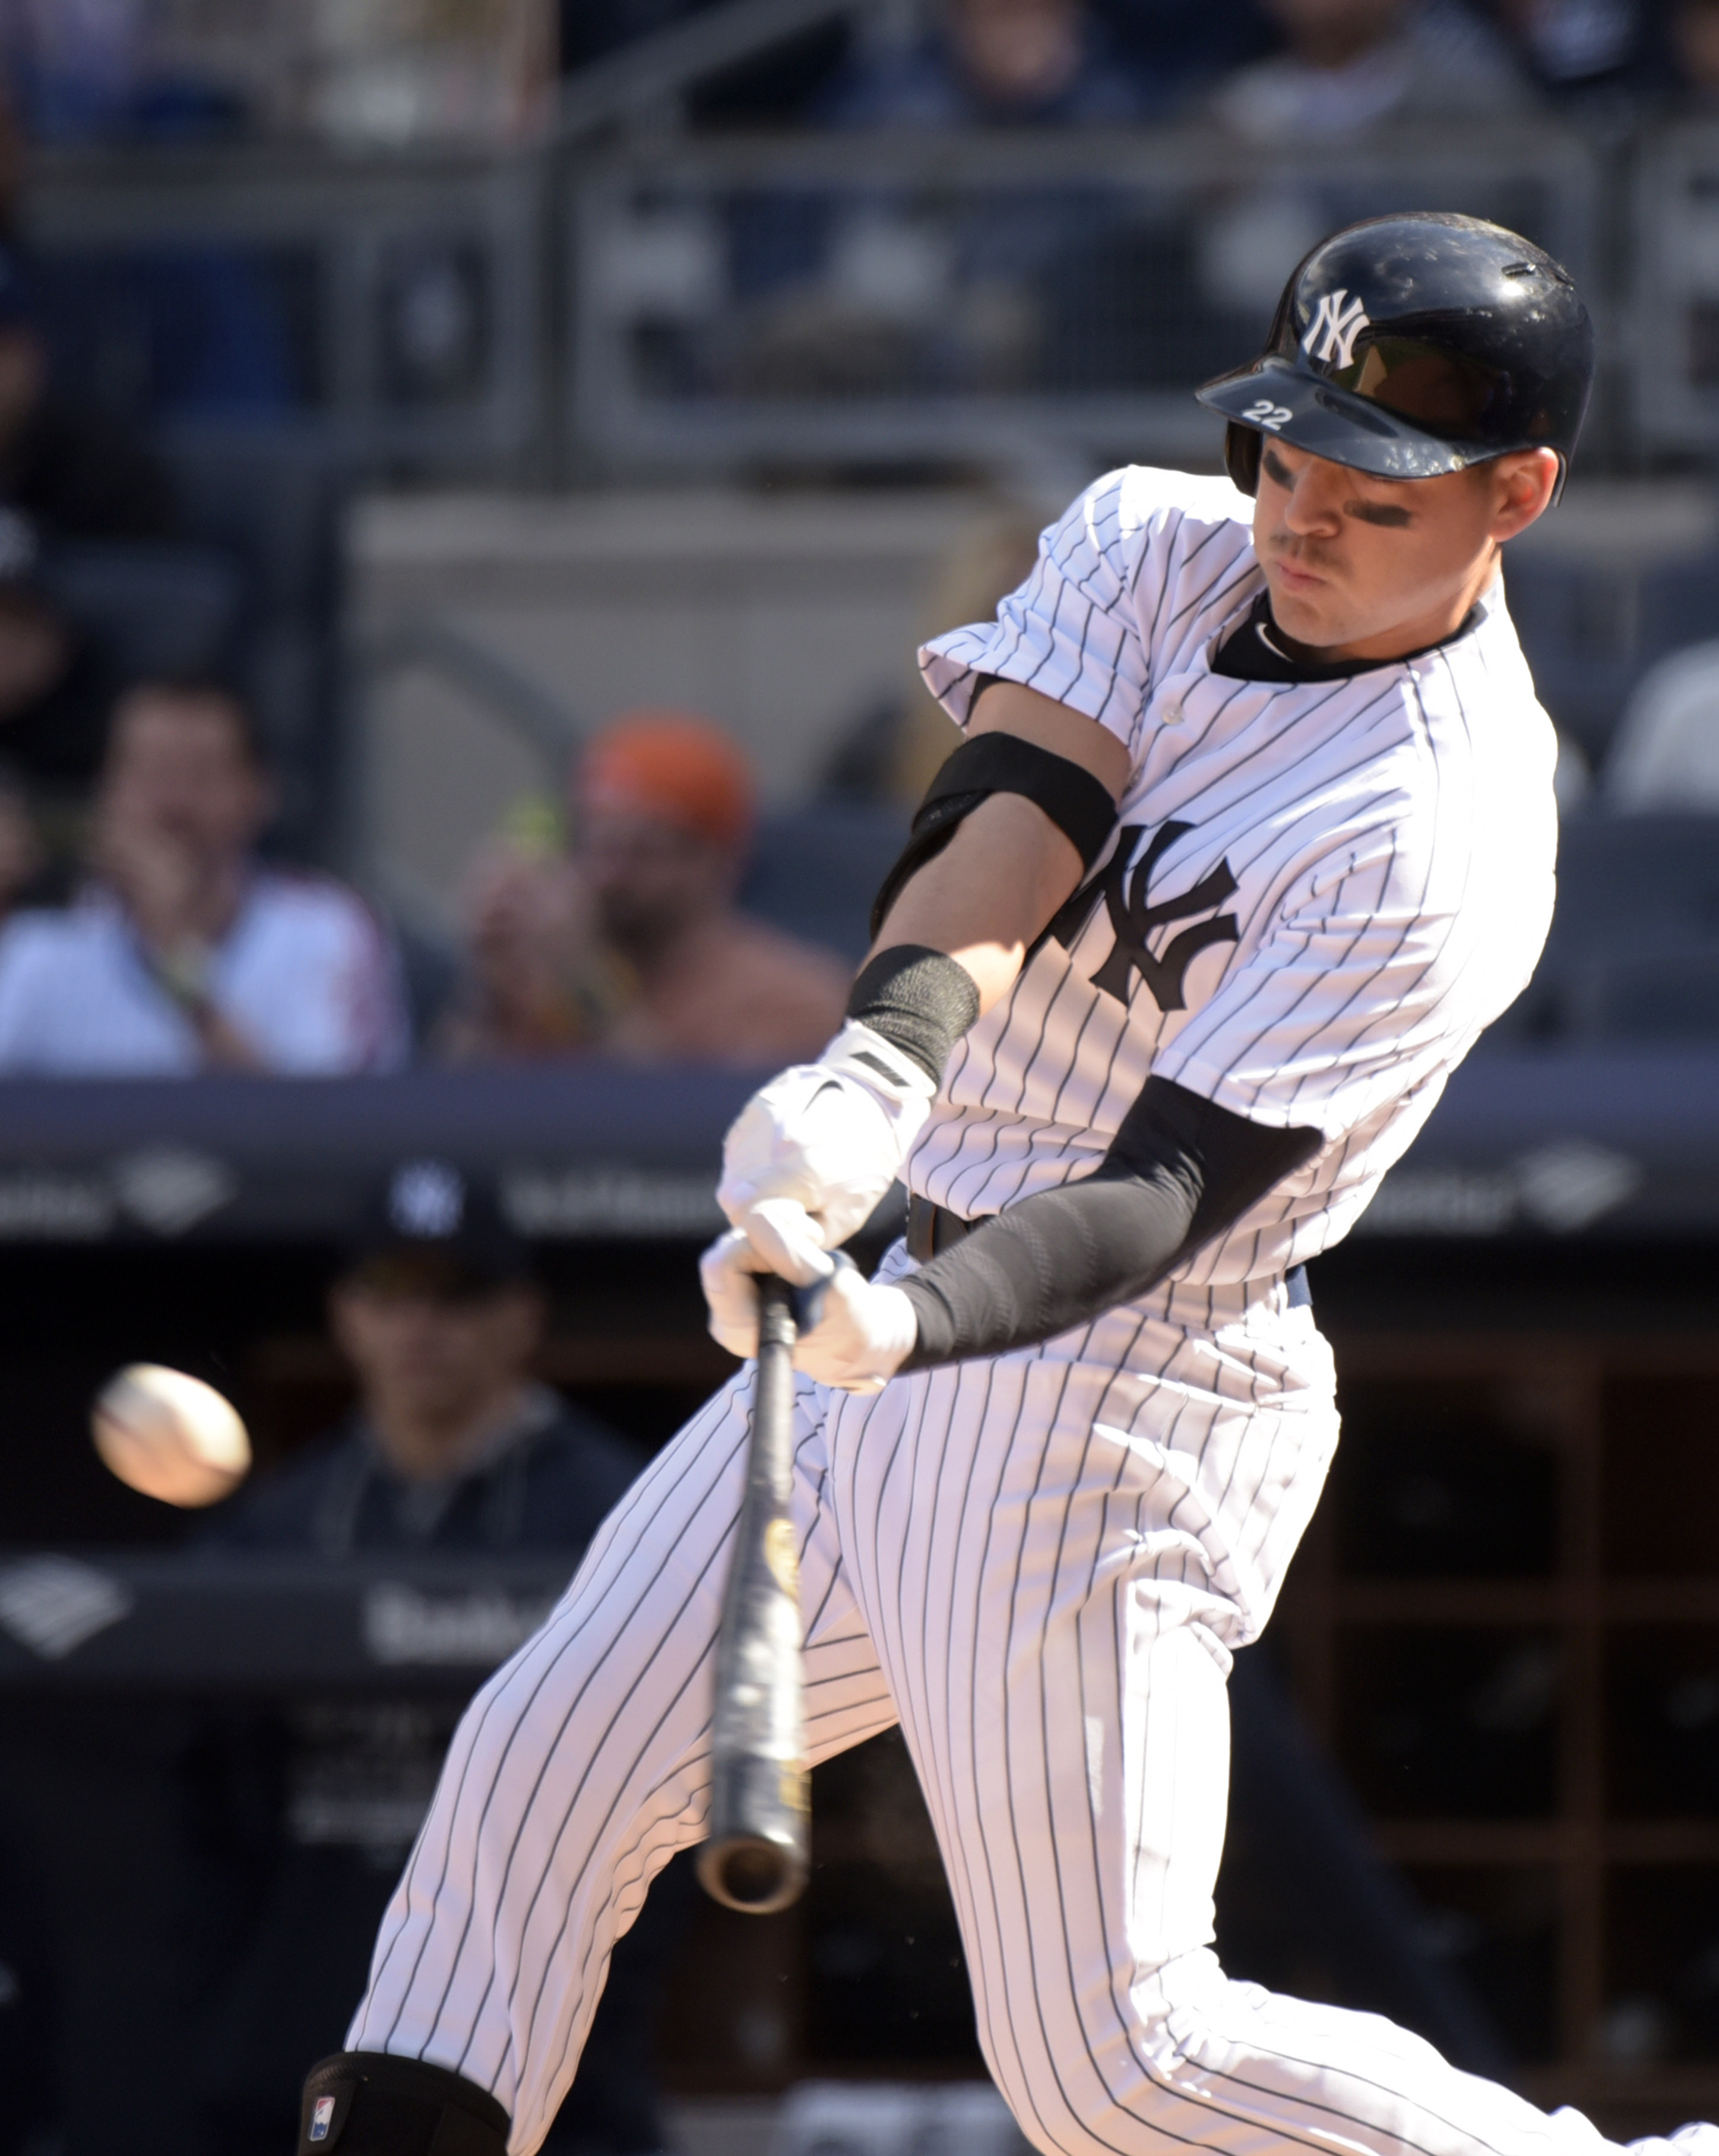 New York Yankees' Jacoby Ellsbury, sporting a mustache, flies out during the first inning of an interleague baseball game agains the New York Mets Saturday, April 25, 2015, at Yankee Stadium in New York. (AP Photo/Bill Kostroun)